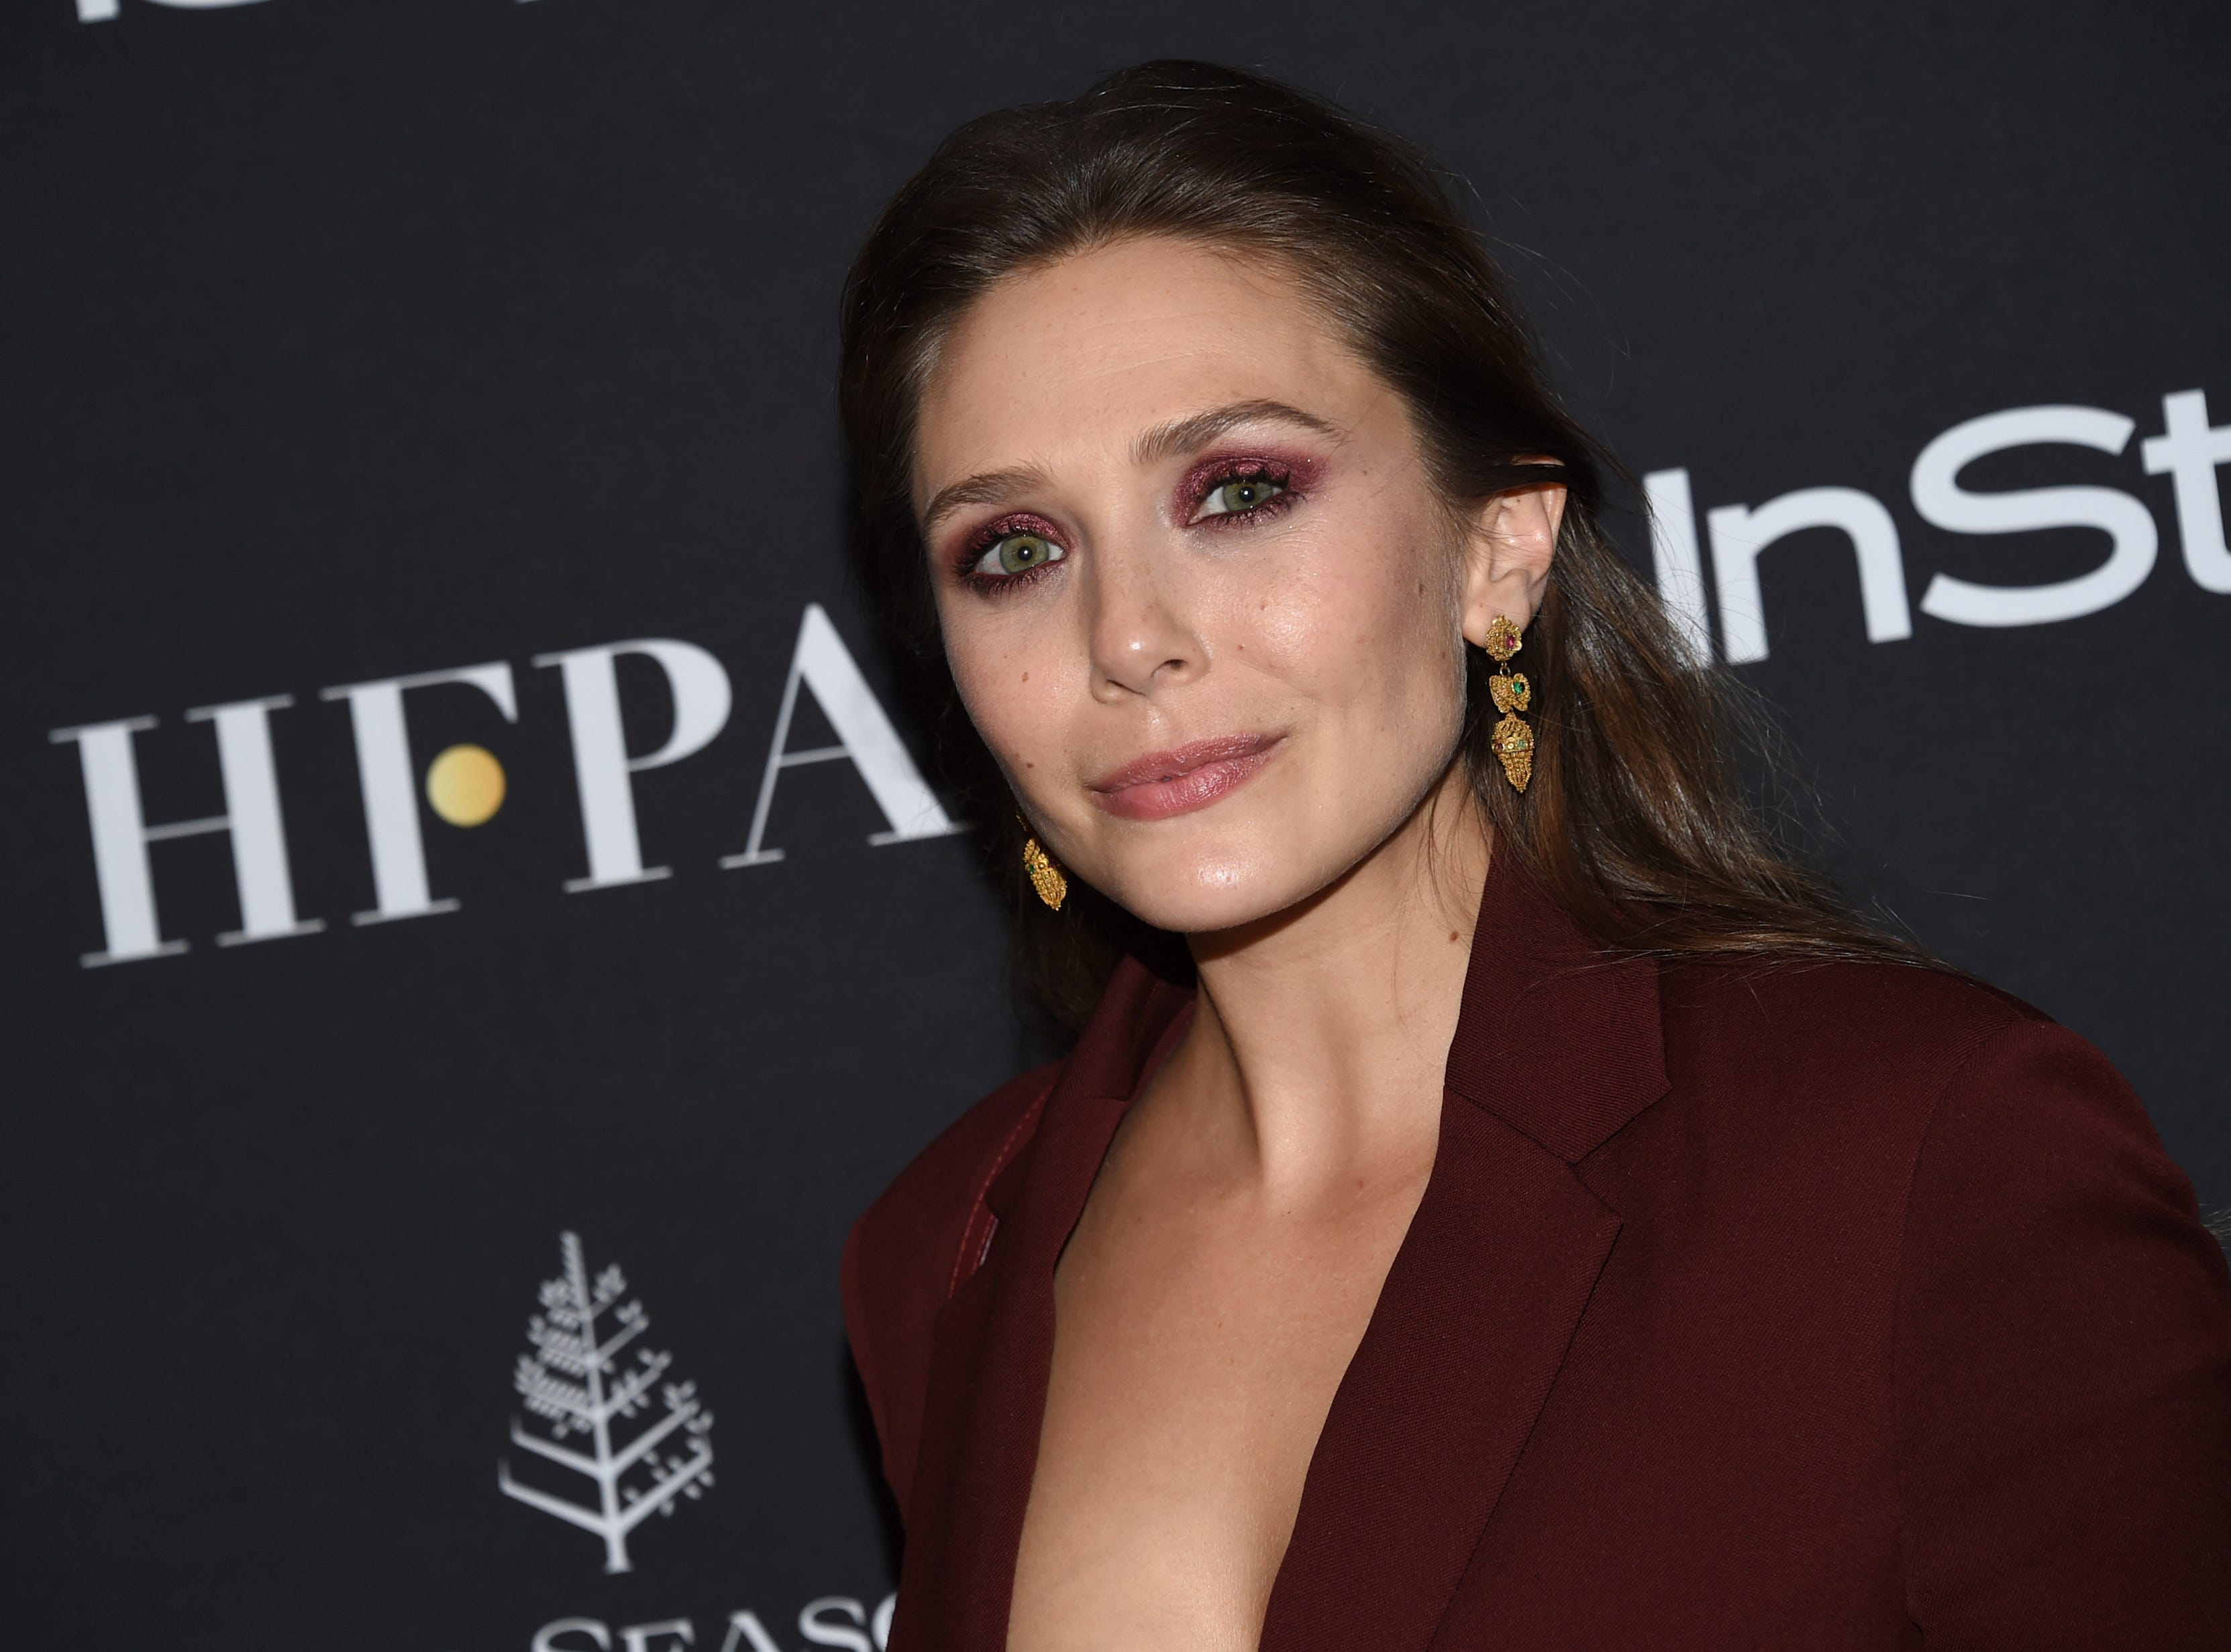 Actress Elizabeth Olsen attends the Hollywood Foreign Press Association/InStyle party on Day 3 of the Toronto International Film Festival at the Four Seasons Hotel Toronto on Saturday, Sept. 8, 2018, in Toronto. (Photo by Evan Agostini/Invision/AP) ORG XMIT: TOEA213